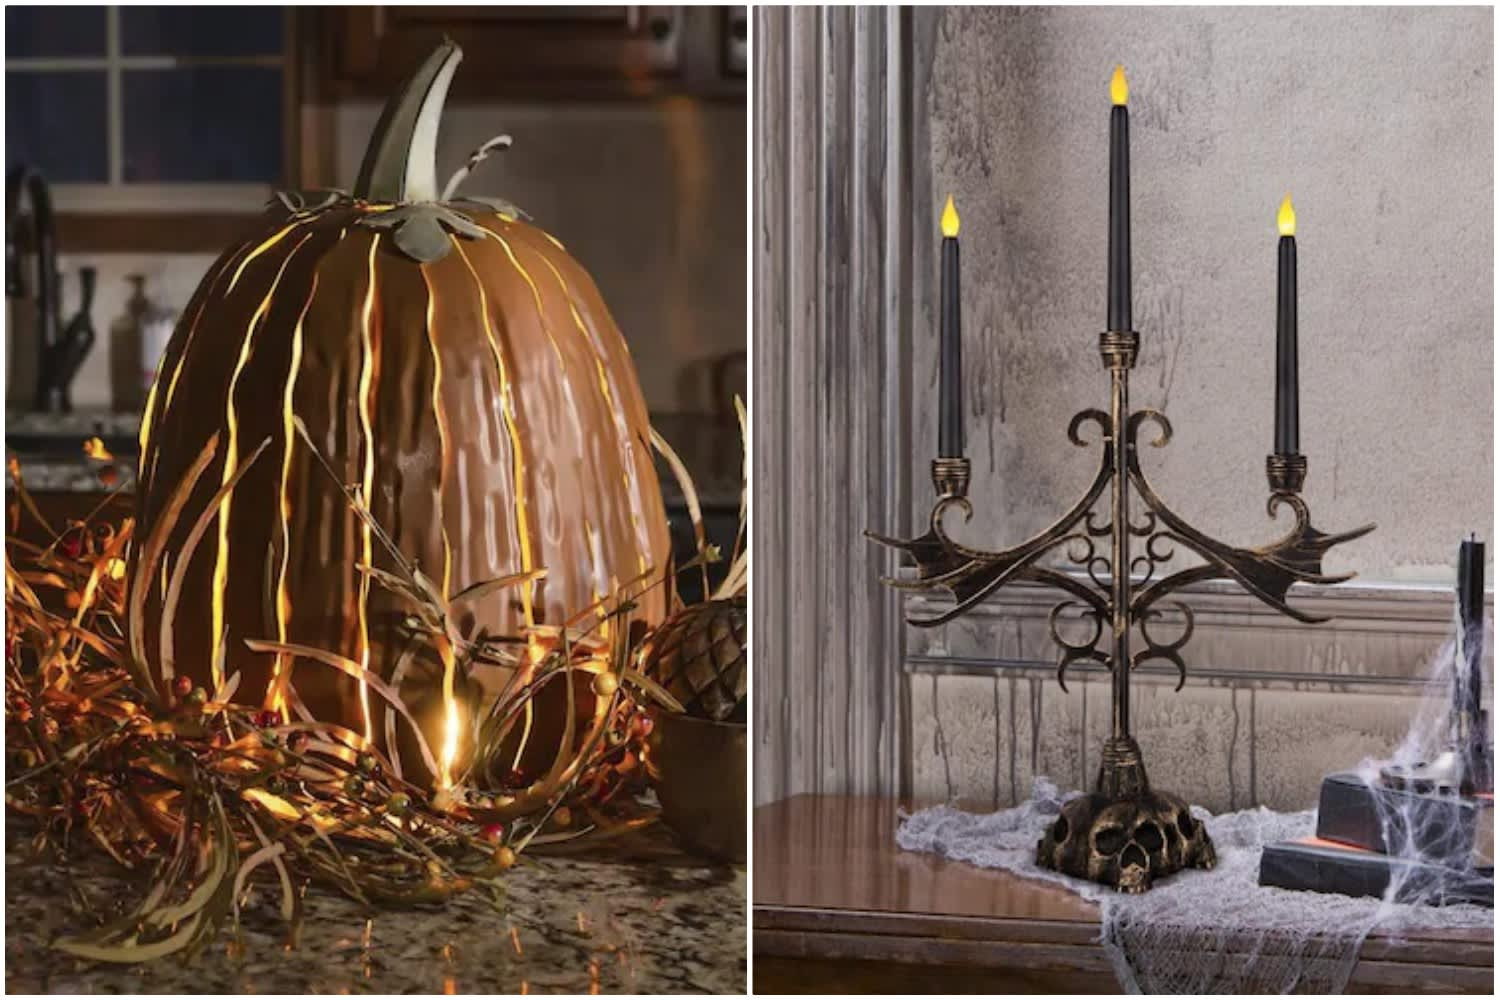 Lowe's Halloween Decor Is Here, and It's So Good, We're Spooked